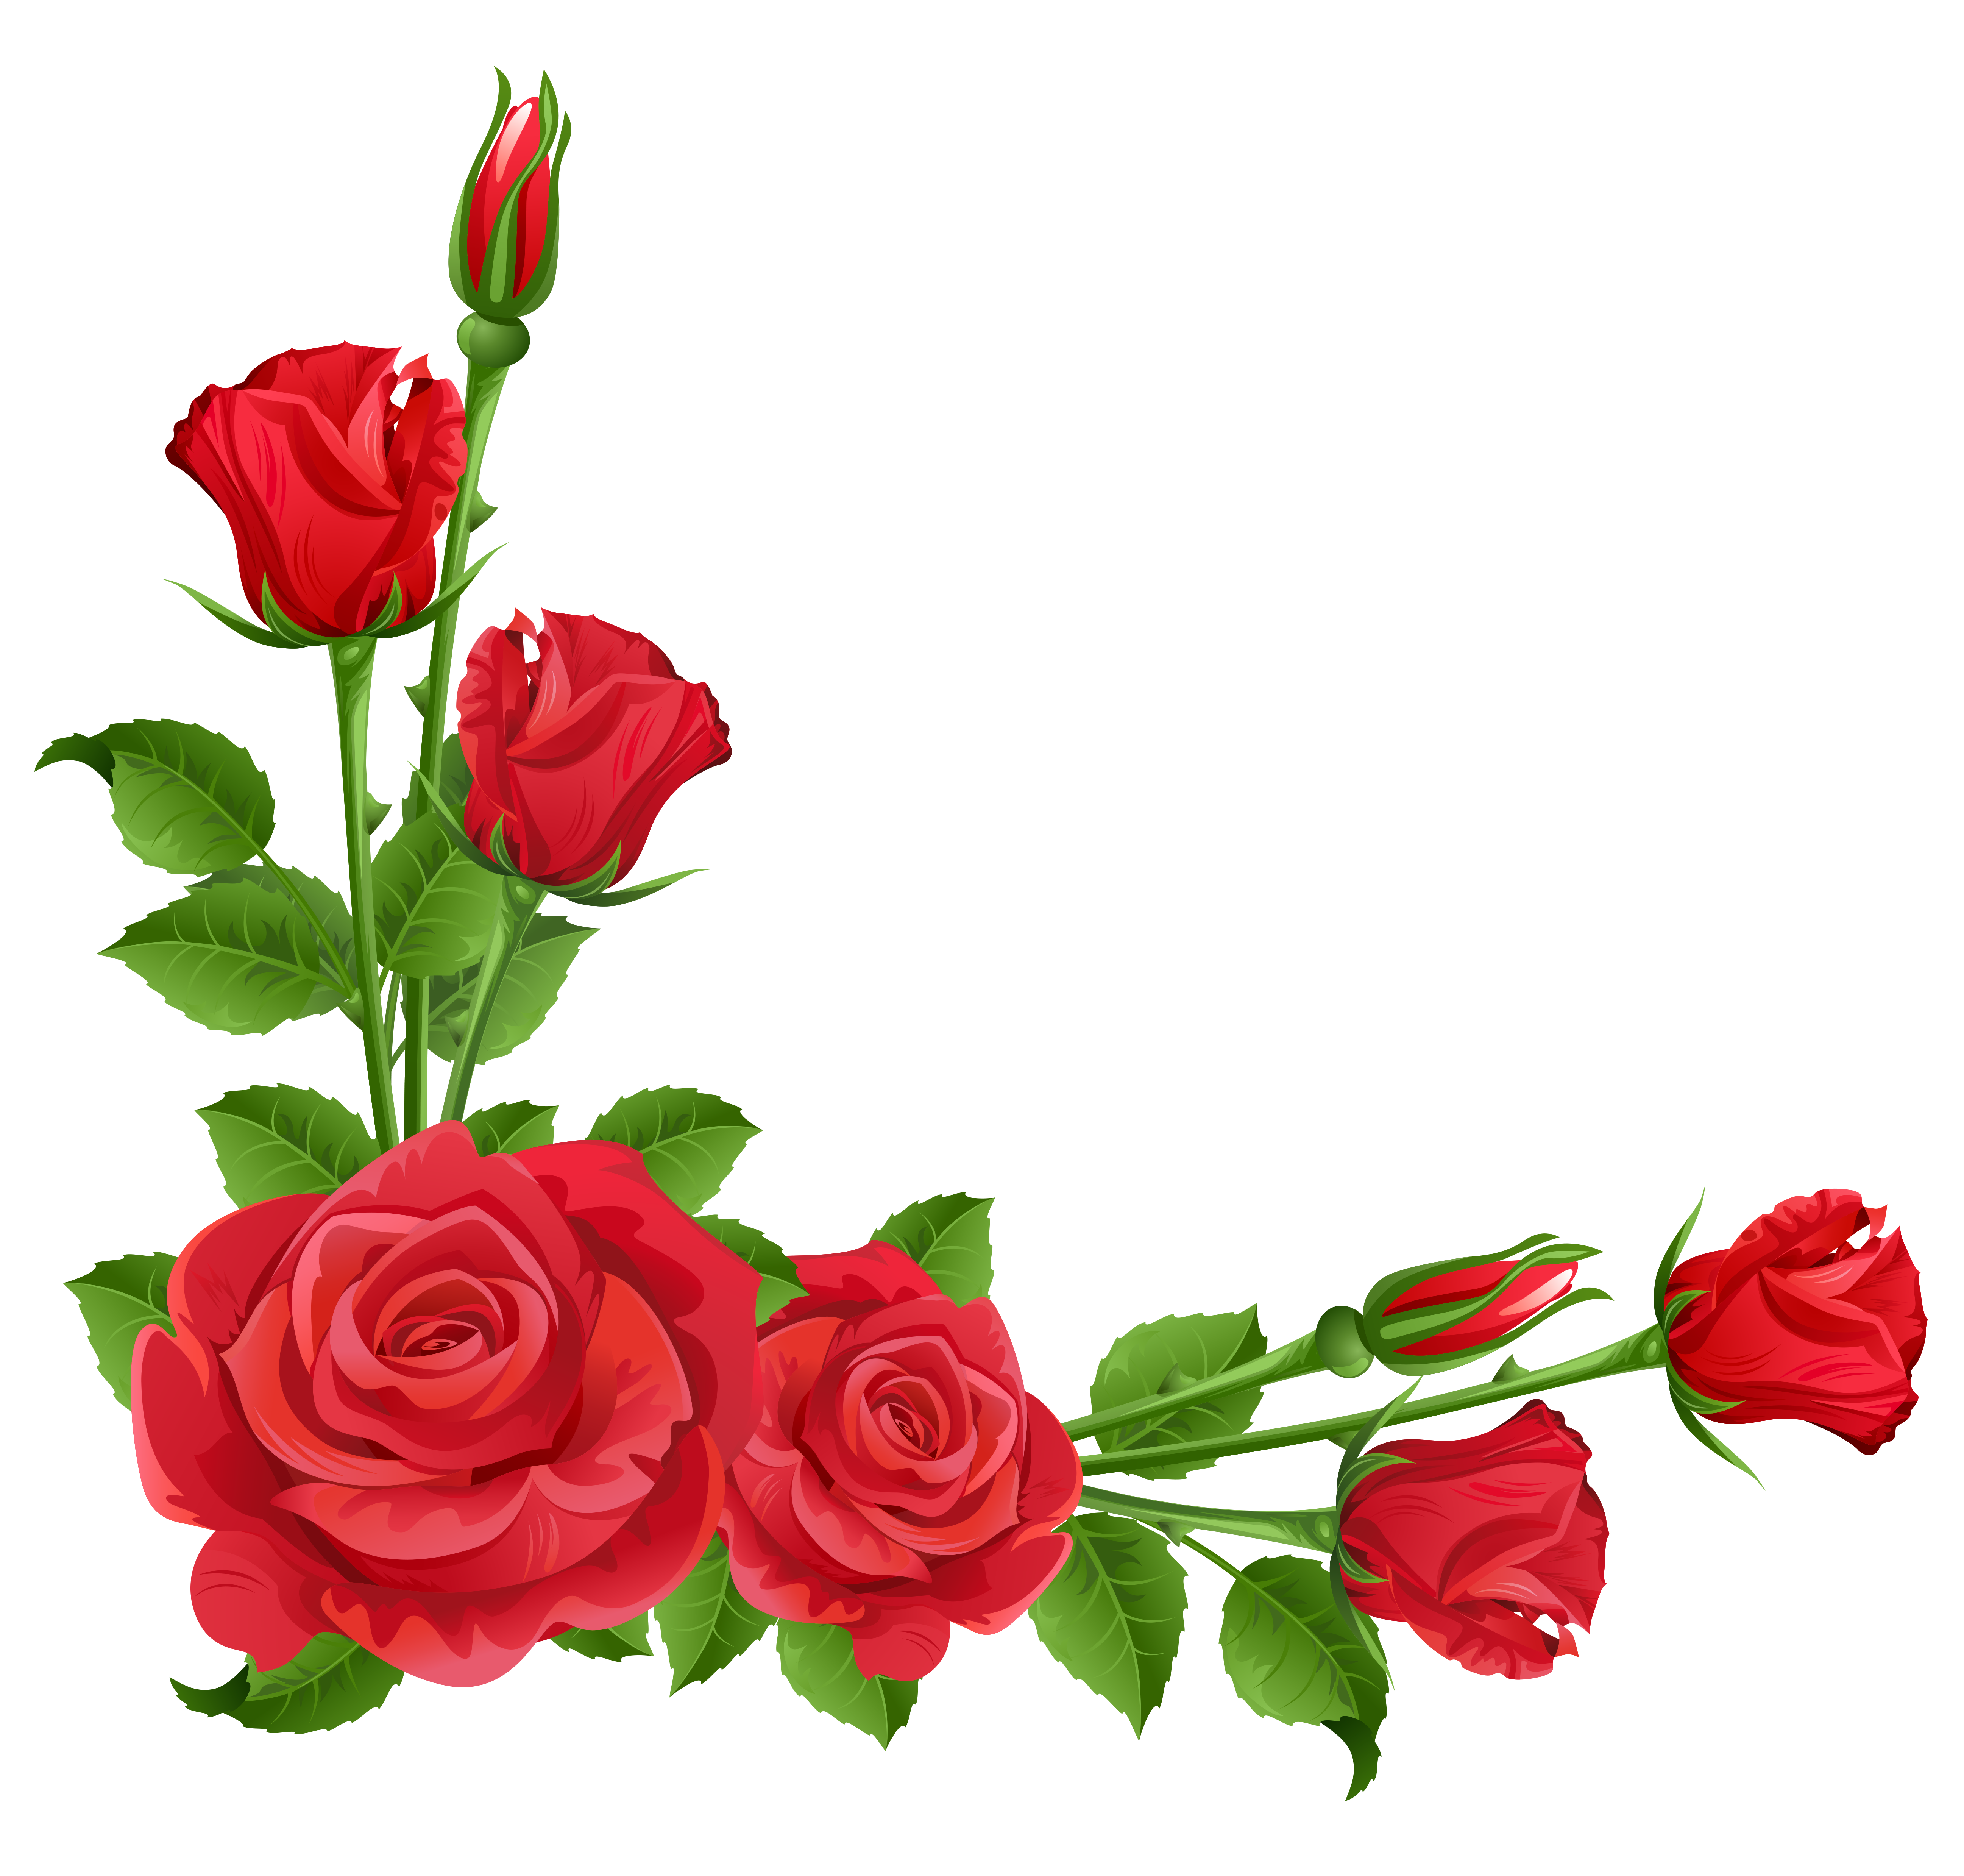 Pink Rose clipart public domain Png Red Transparent Roses Pinterest